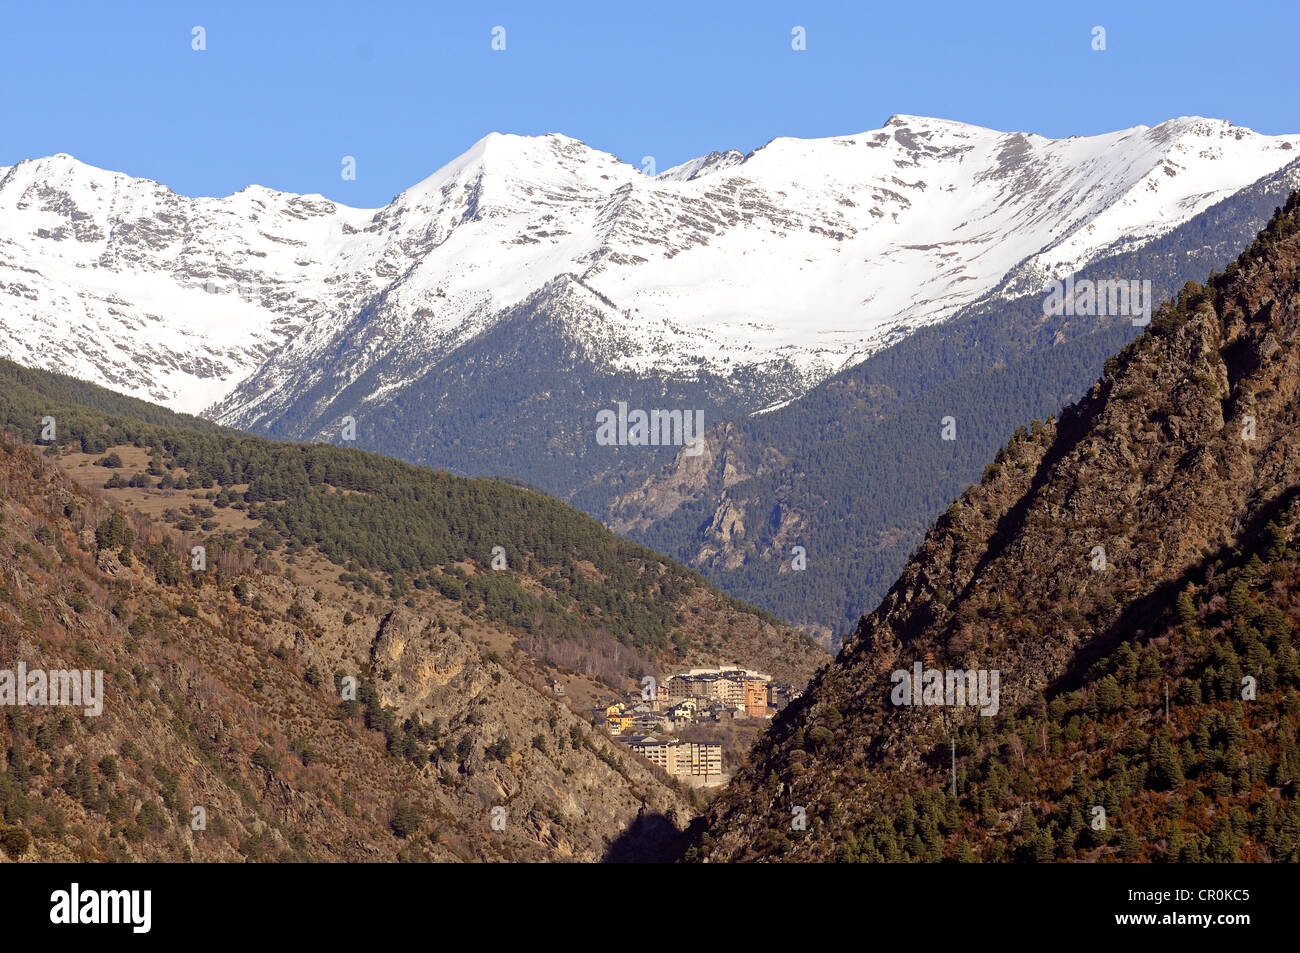 View from La Plana in Andorra La Vella looking north towards the remote mountain village of Sispony in front of - Stock Image